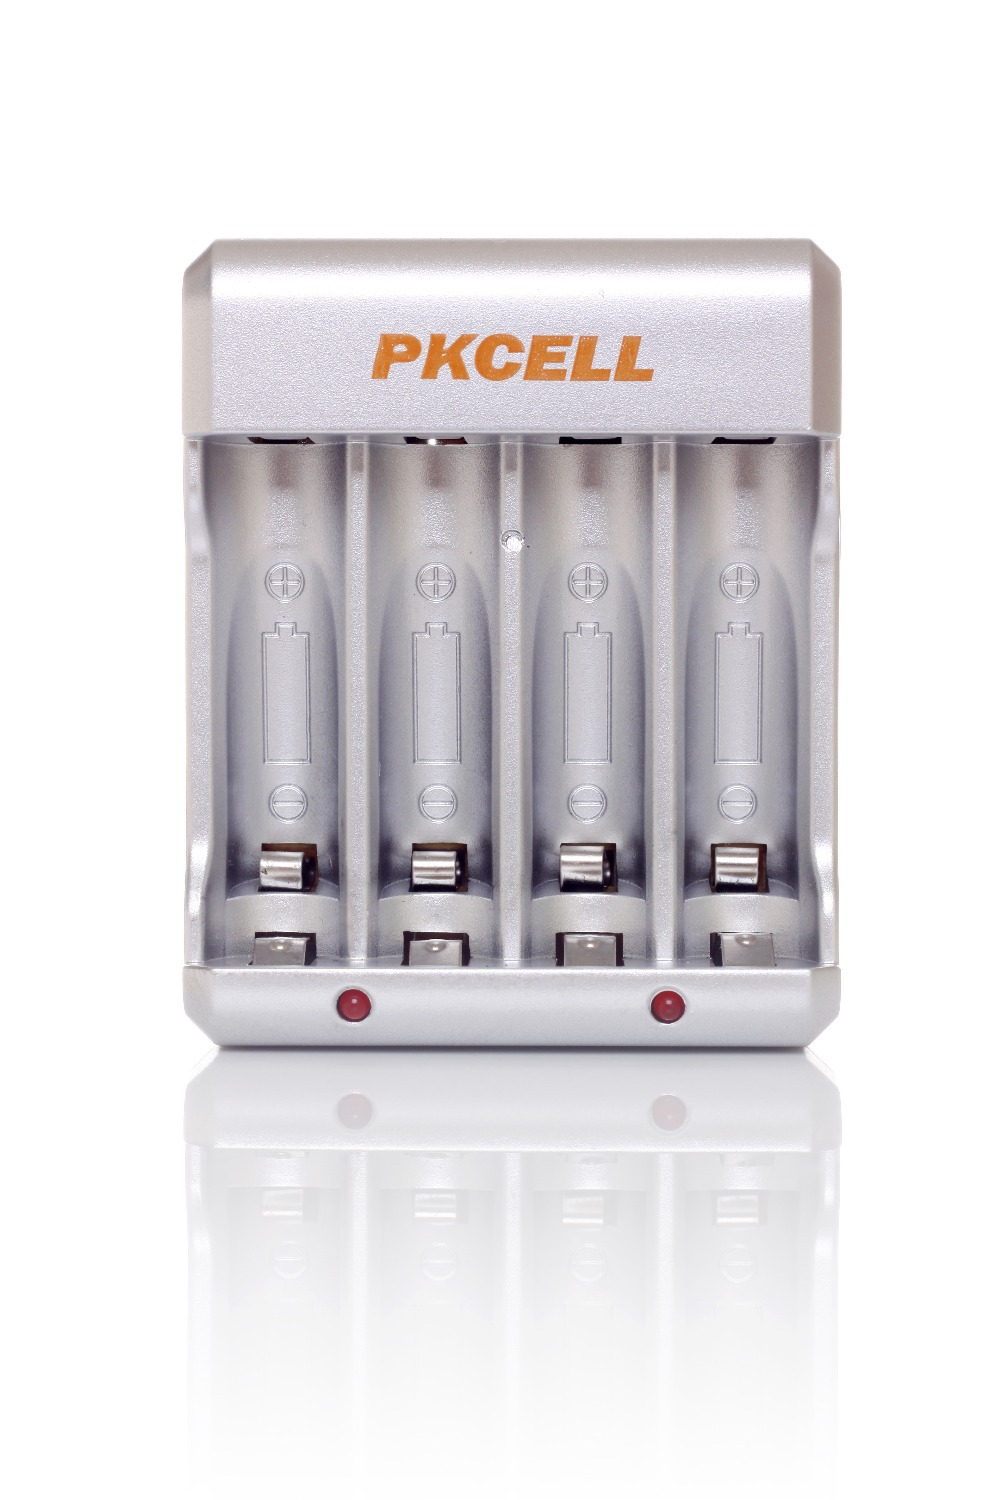 1Pcs*PKCELL 8174 AA/AAA/NICD/NIMH Battery Charger for Rechargeable Batteries EU/UL Plug(China (Mainland))